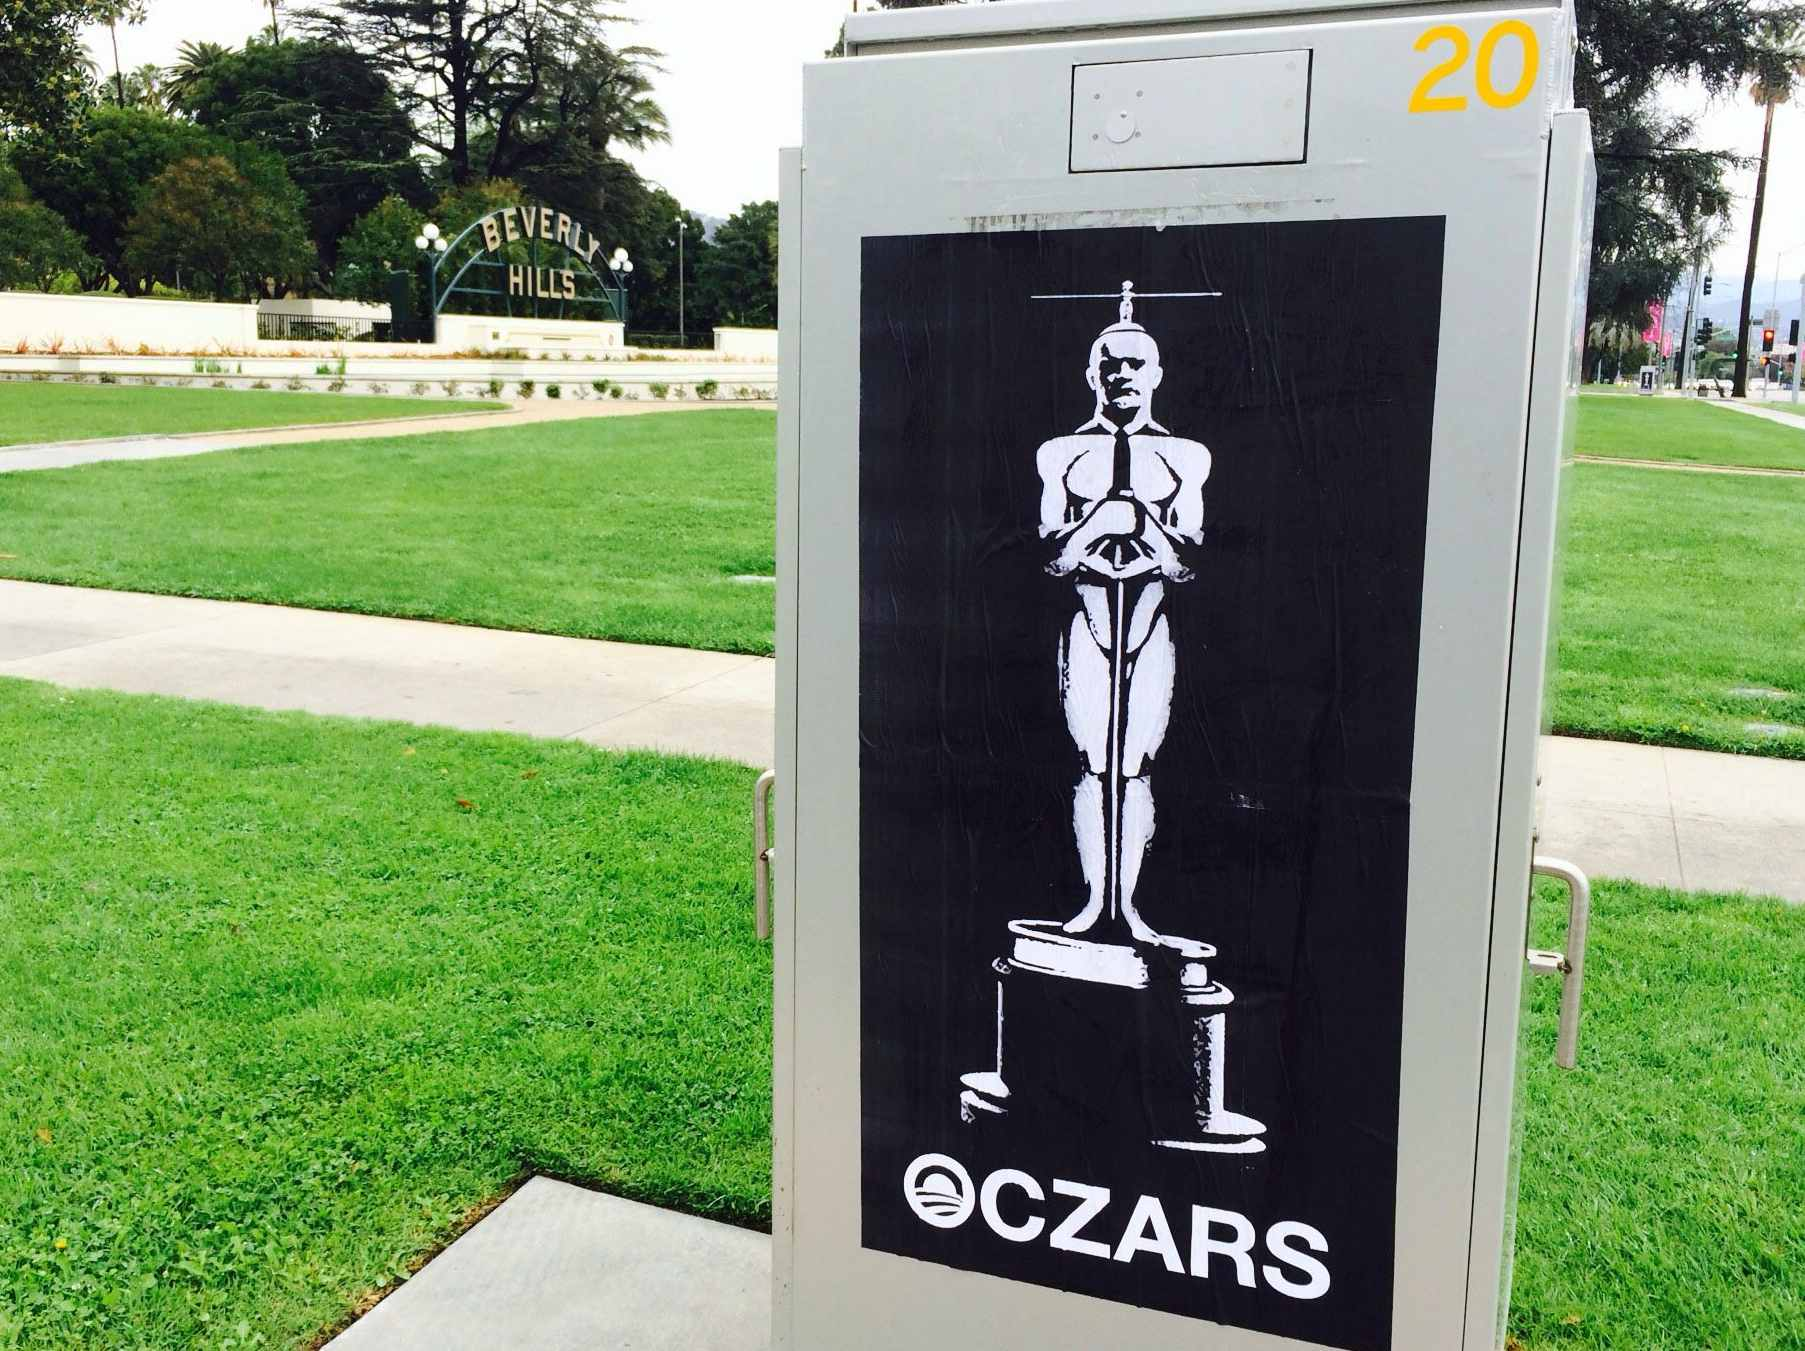 Anti-Obama Street Art Hits Oscars: 'Oczars'